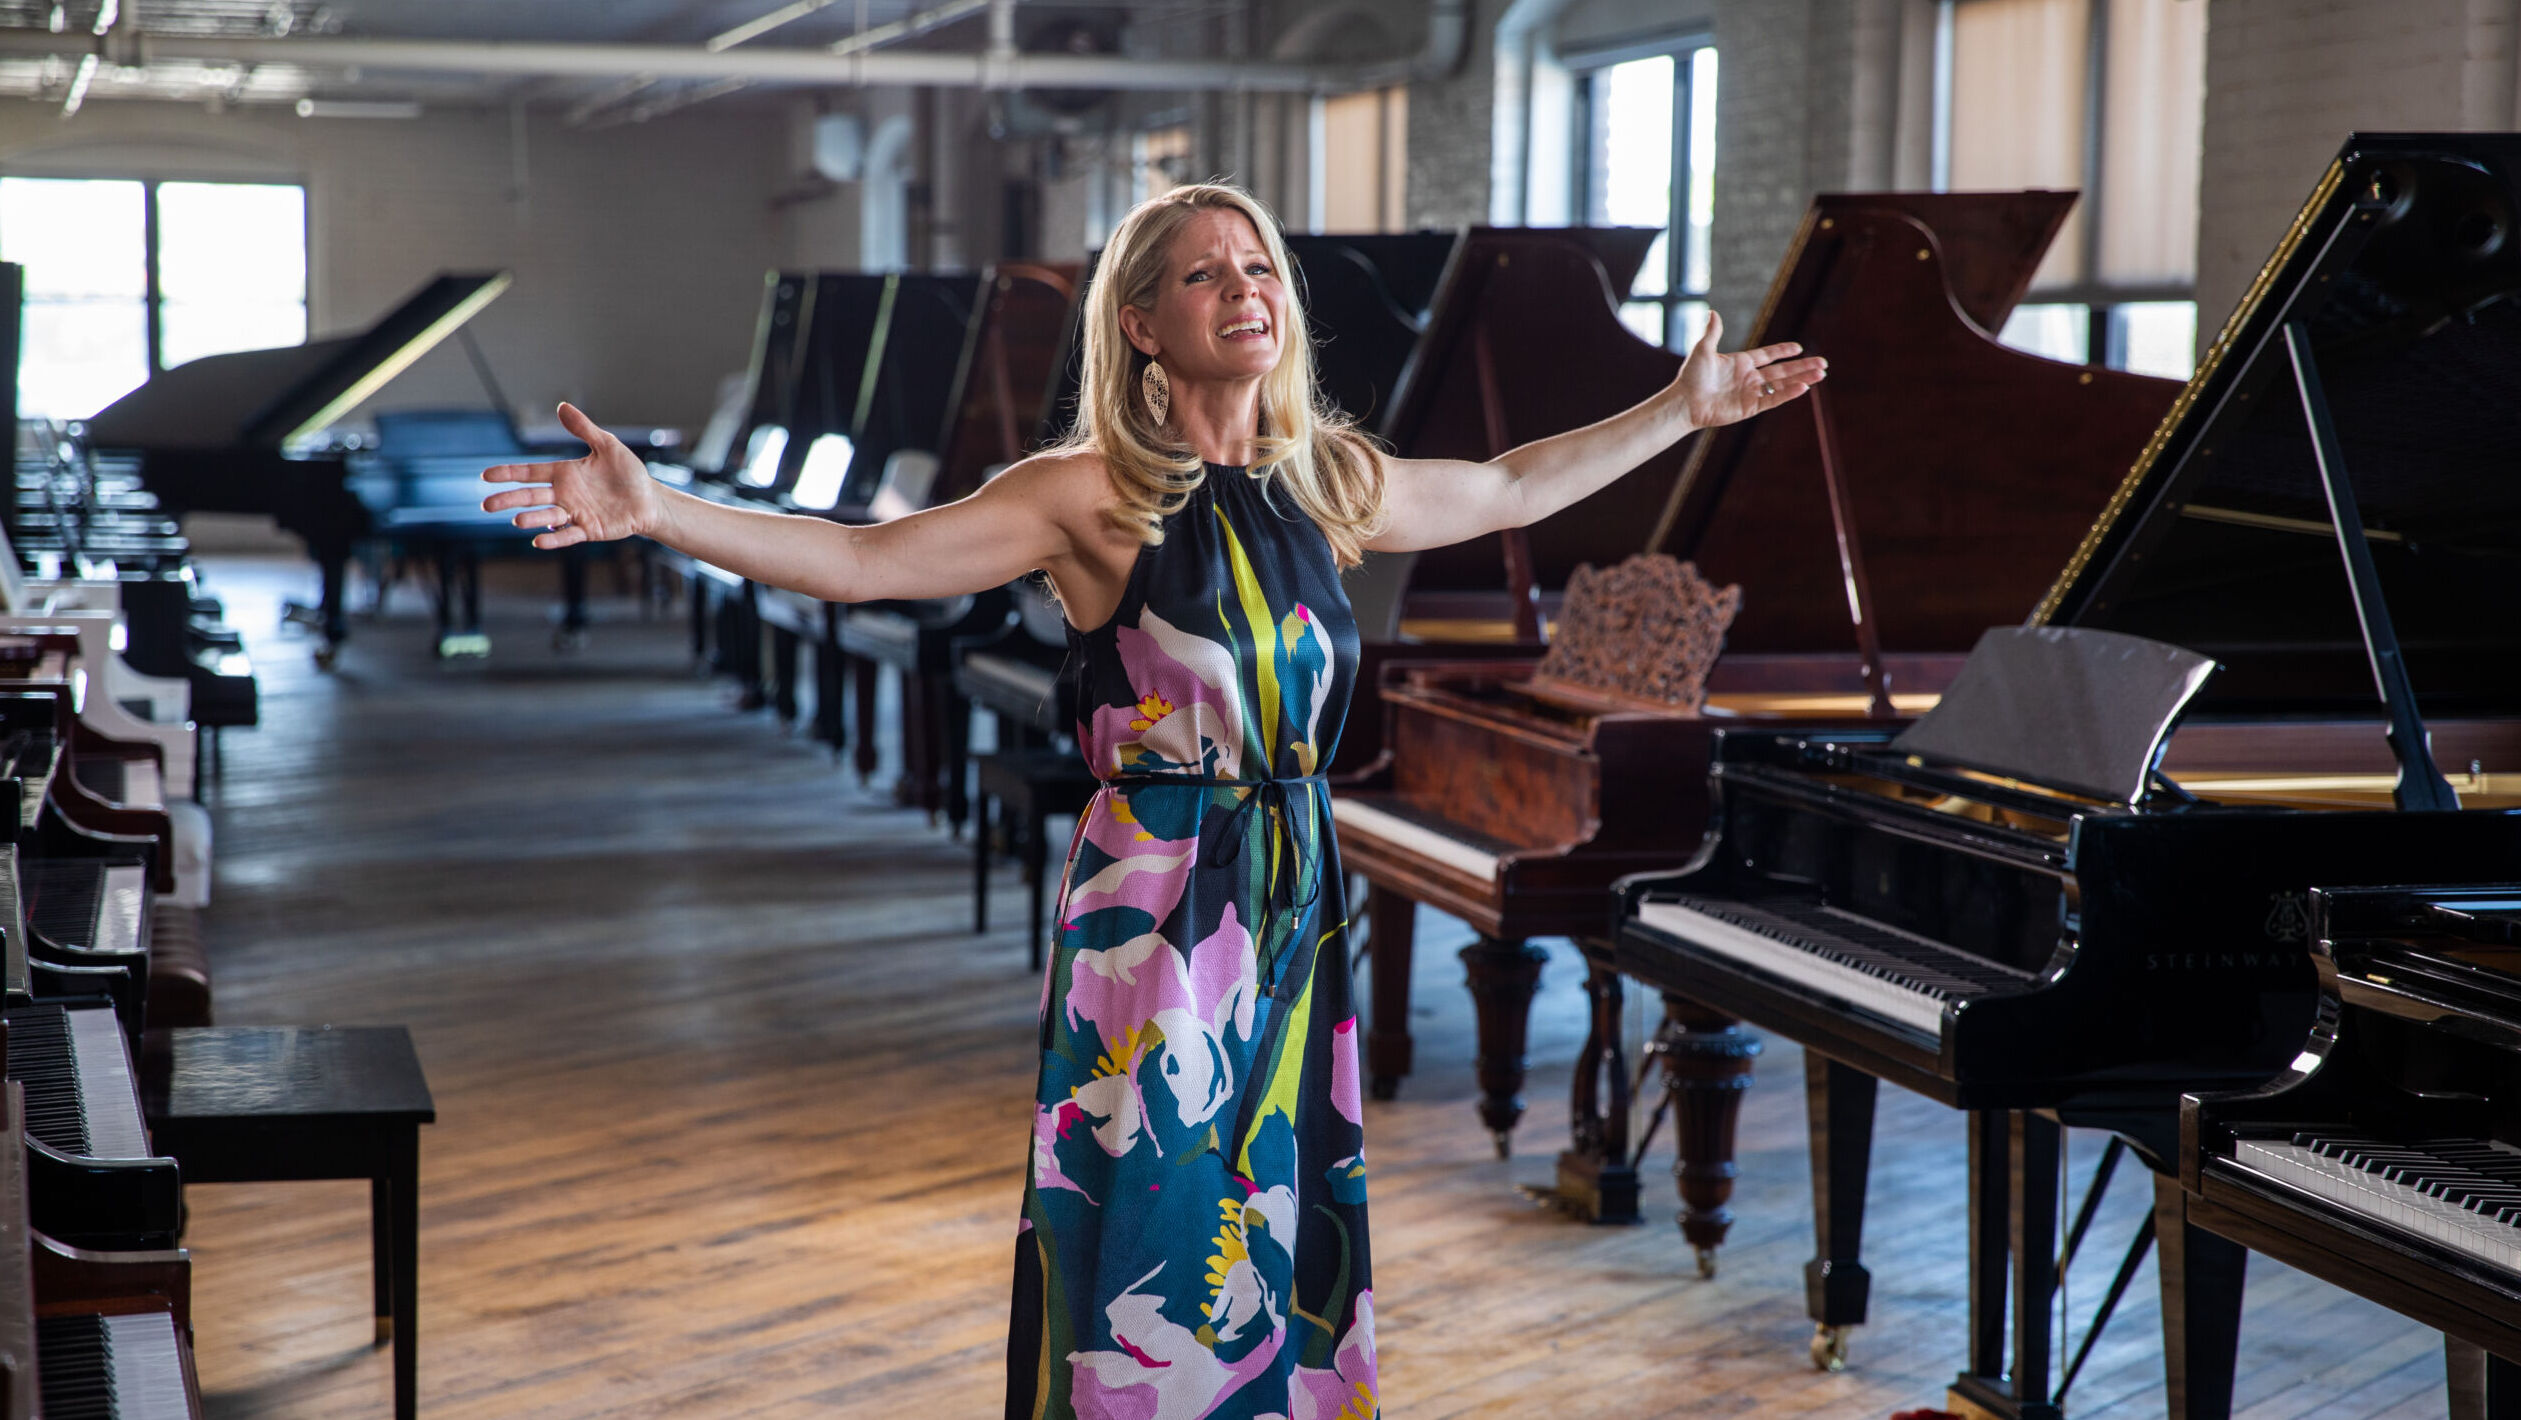 A blonde woman in flower patterned dress sings with outstretched arms in a loft space filled with grand pianos